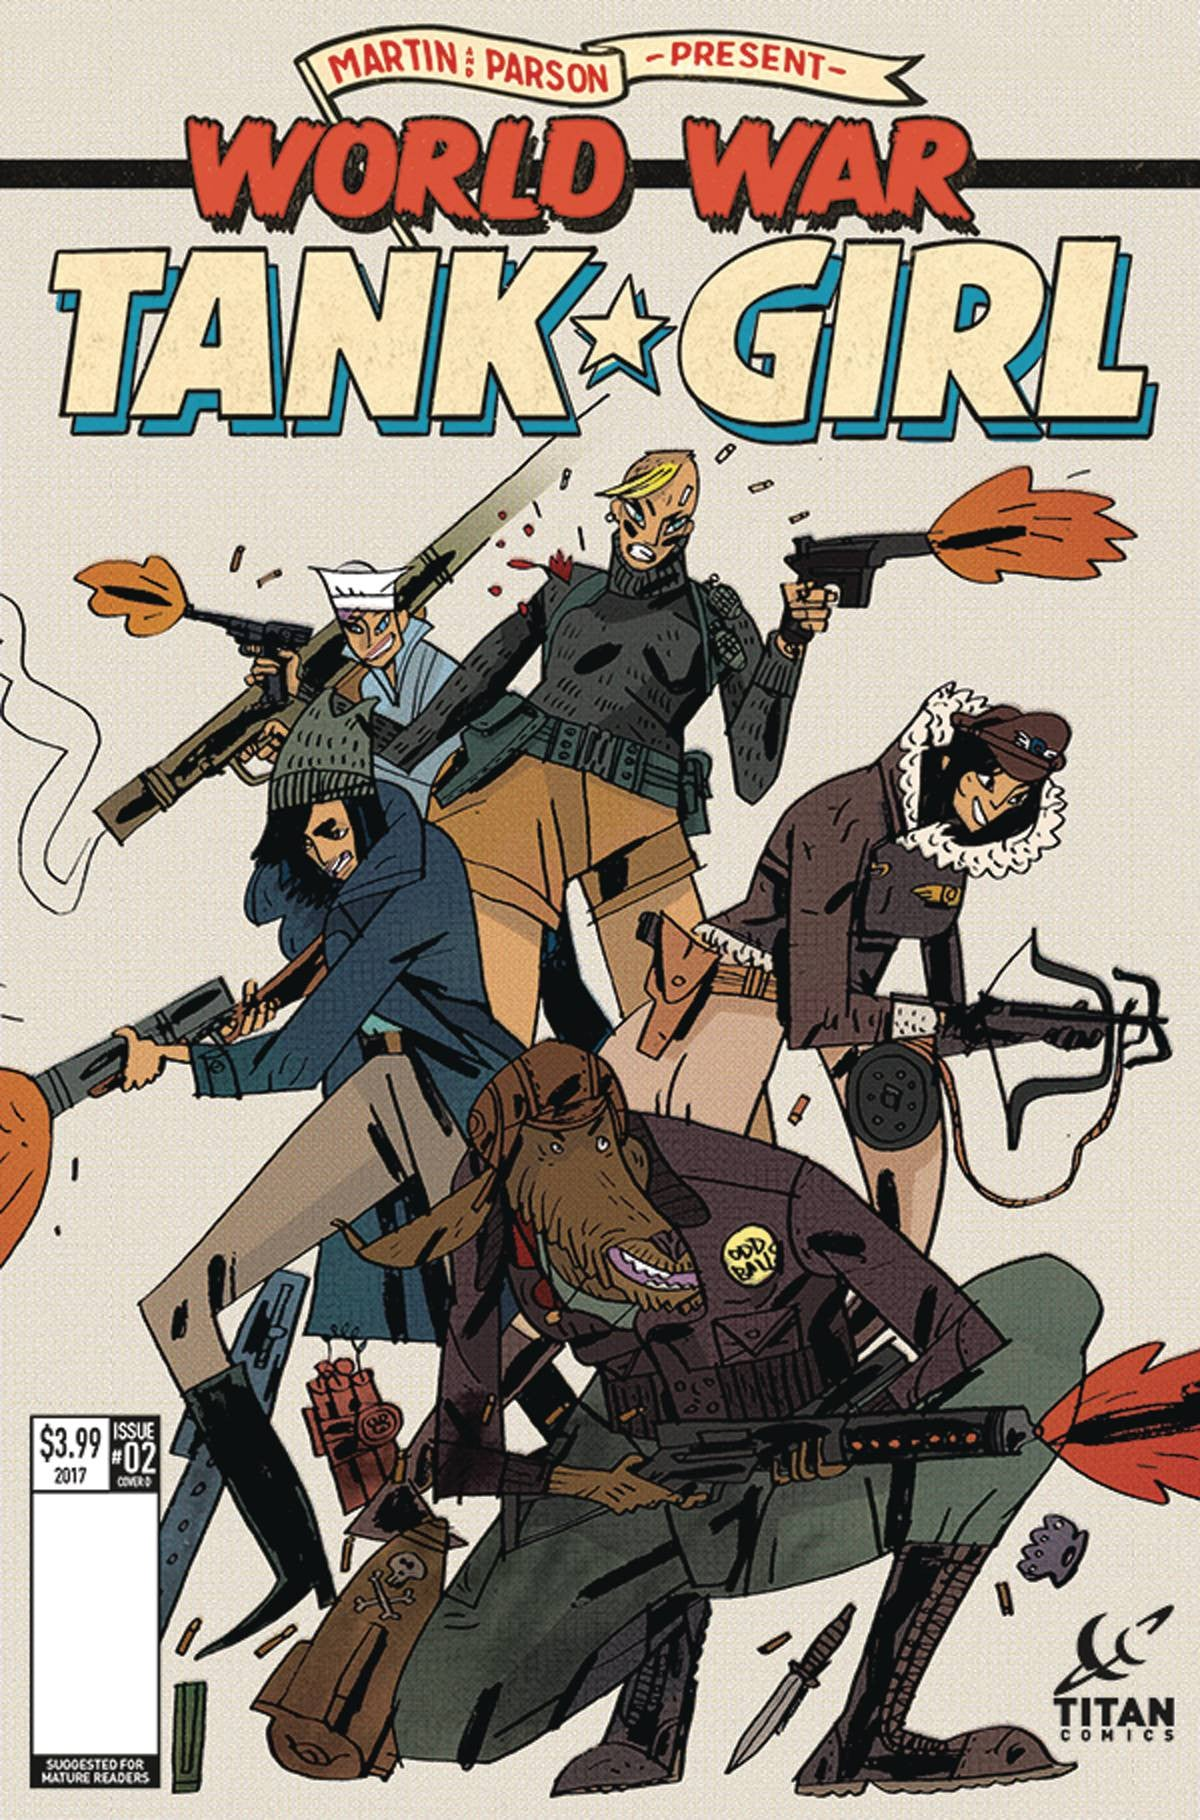 TANK GIRL WORLD WAR TANK GIRL #2 (OF 4) CVR D CADWELL